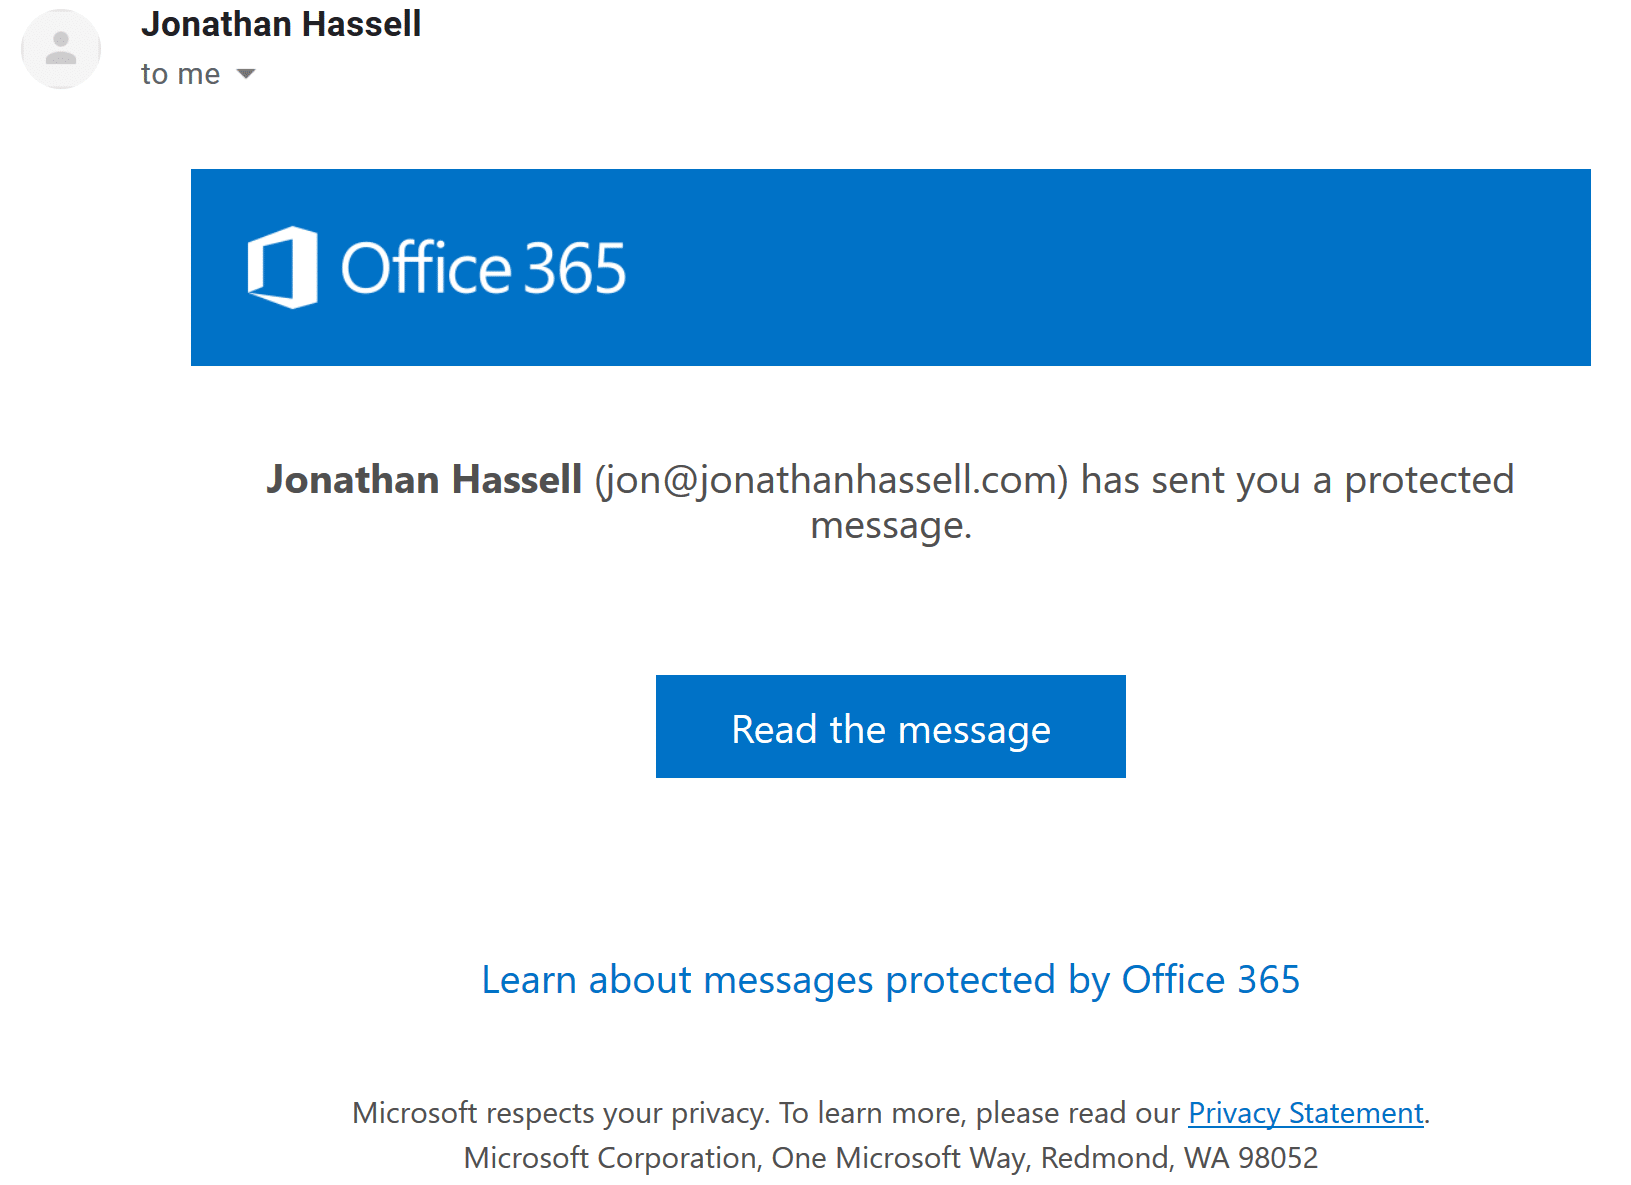 How to Configure and Manage Office 365 Message Encryption